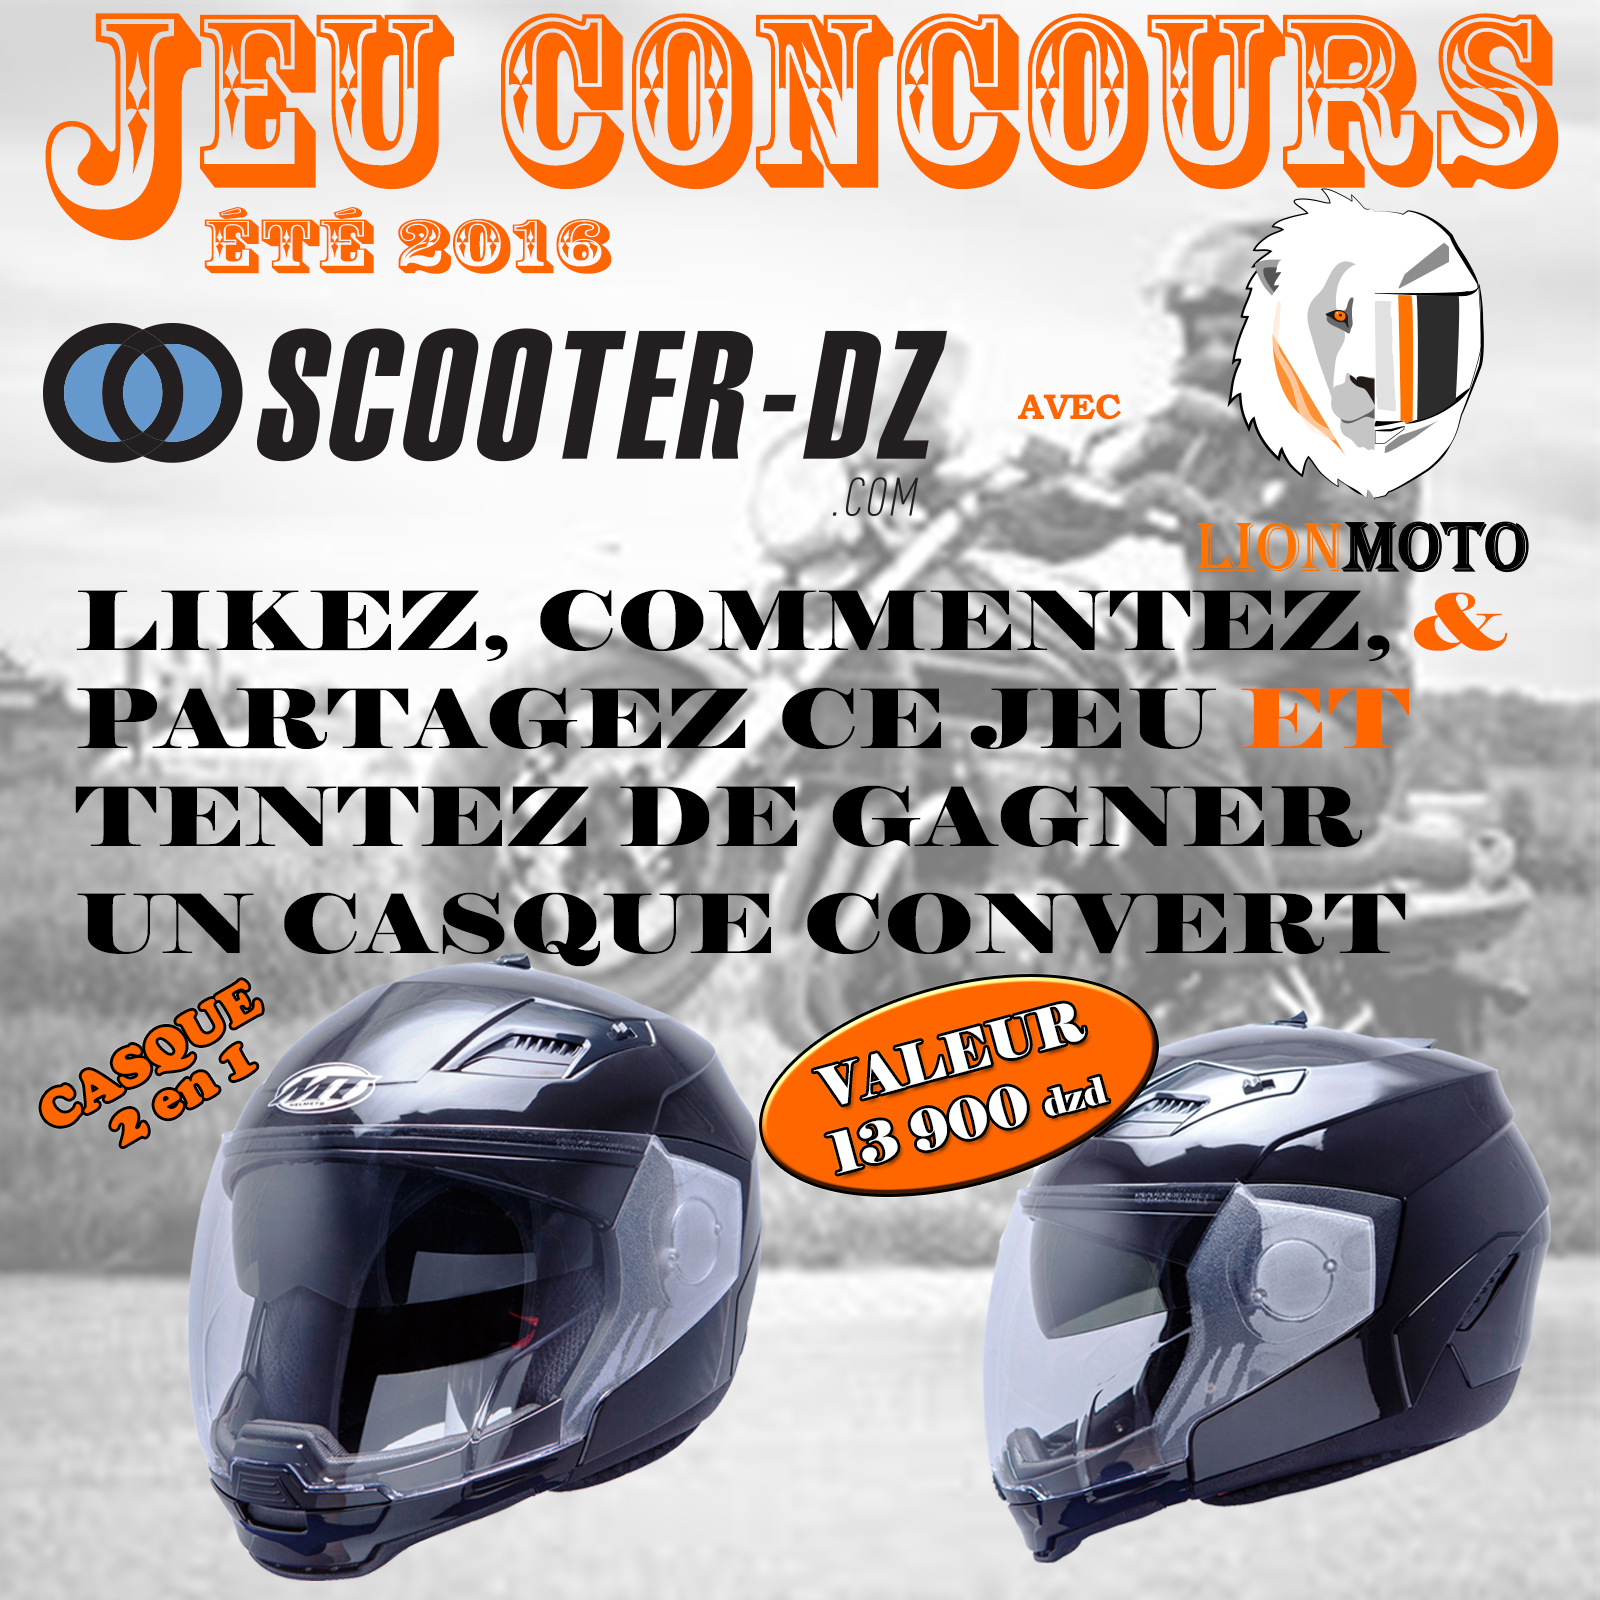 jeu concours facebook sdz lion moto 2016 scooter dz. Black Bedroom Furniture Sets. Home Design Ideas